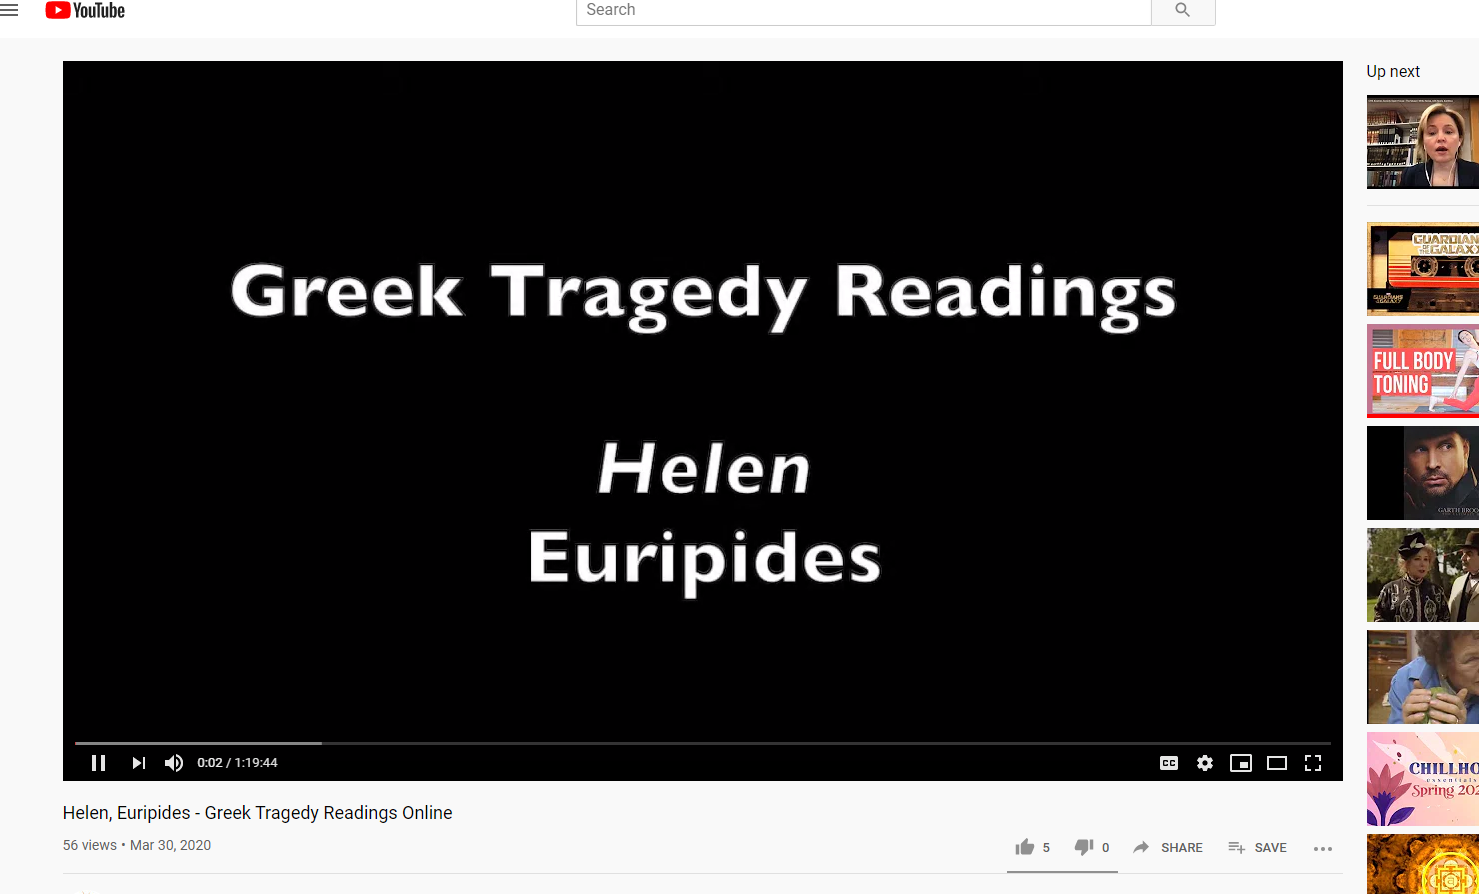 Tragedy readings